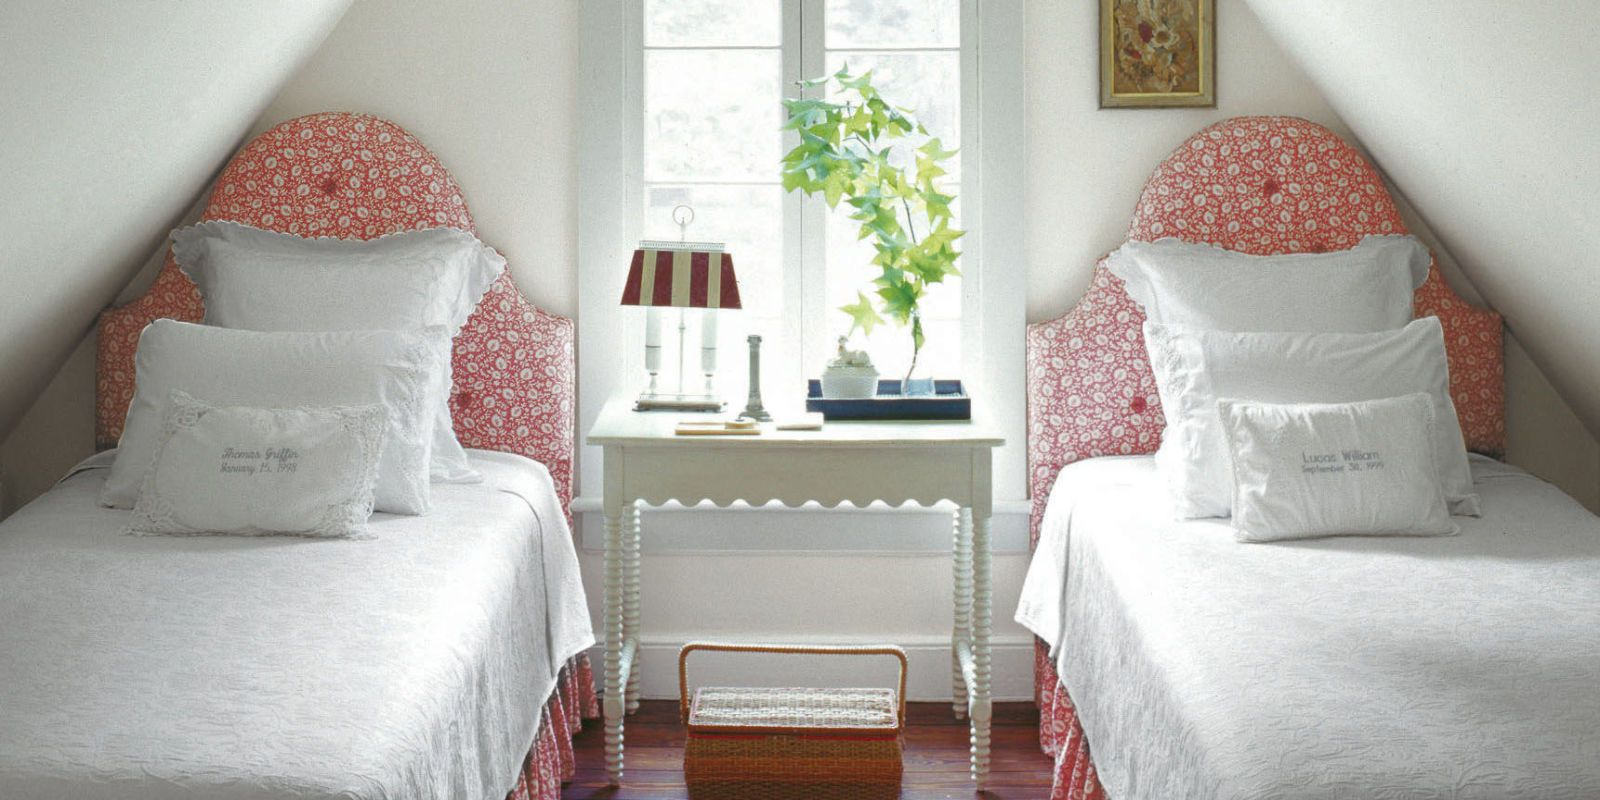 Small Bedroom Spaces. Small Bedroom Ideas Spaces